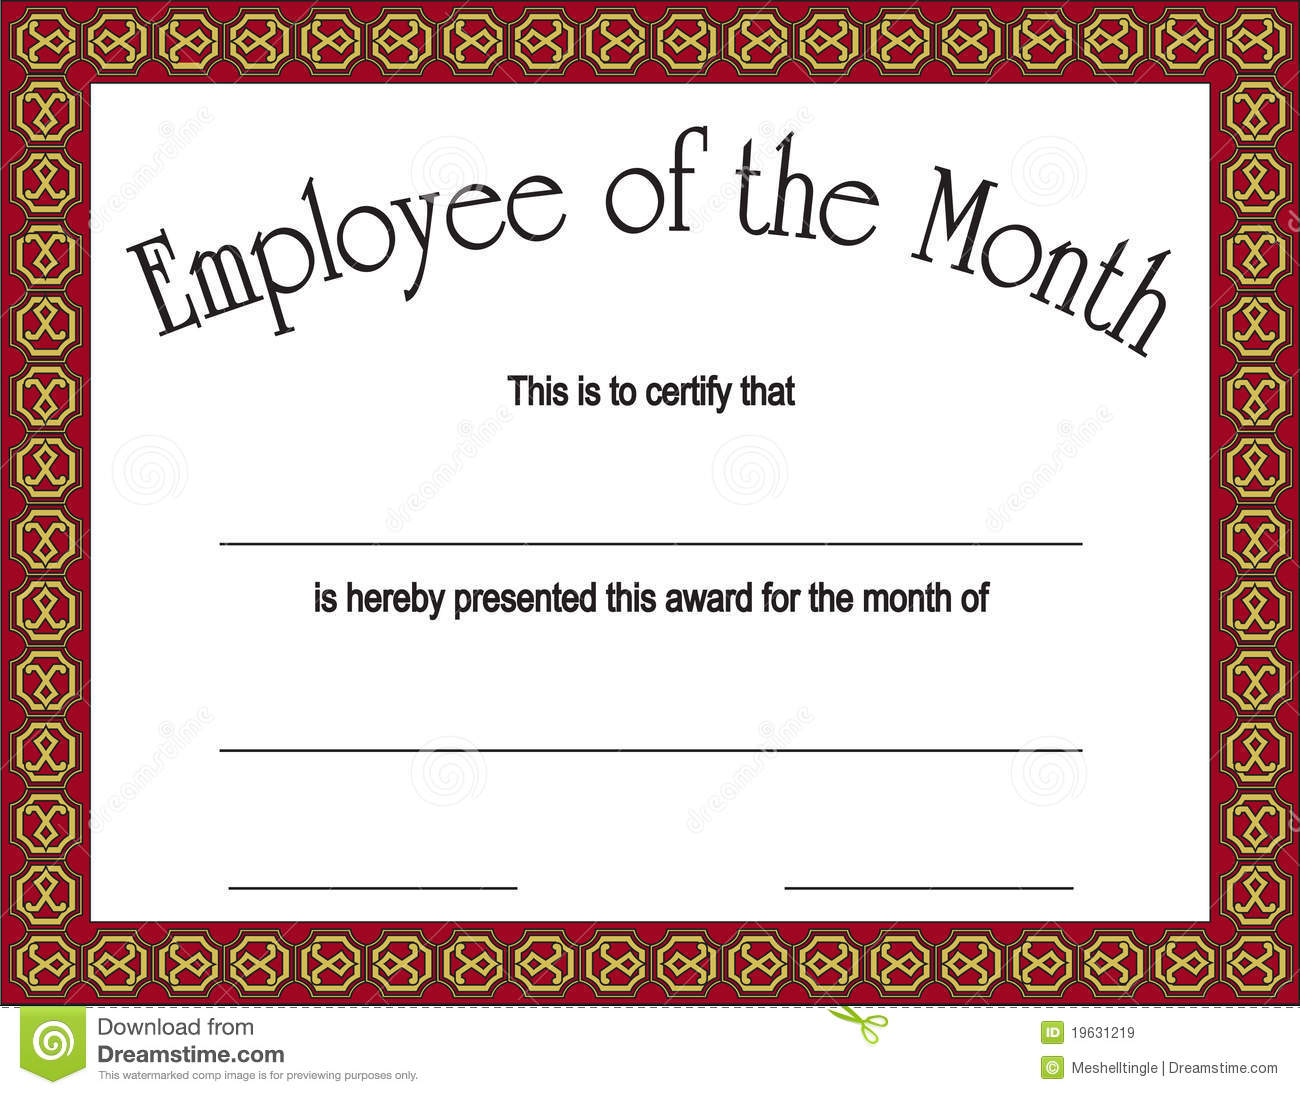 Trust image with regard to free printable employee of the month certificate templates